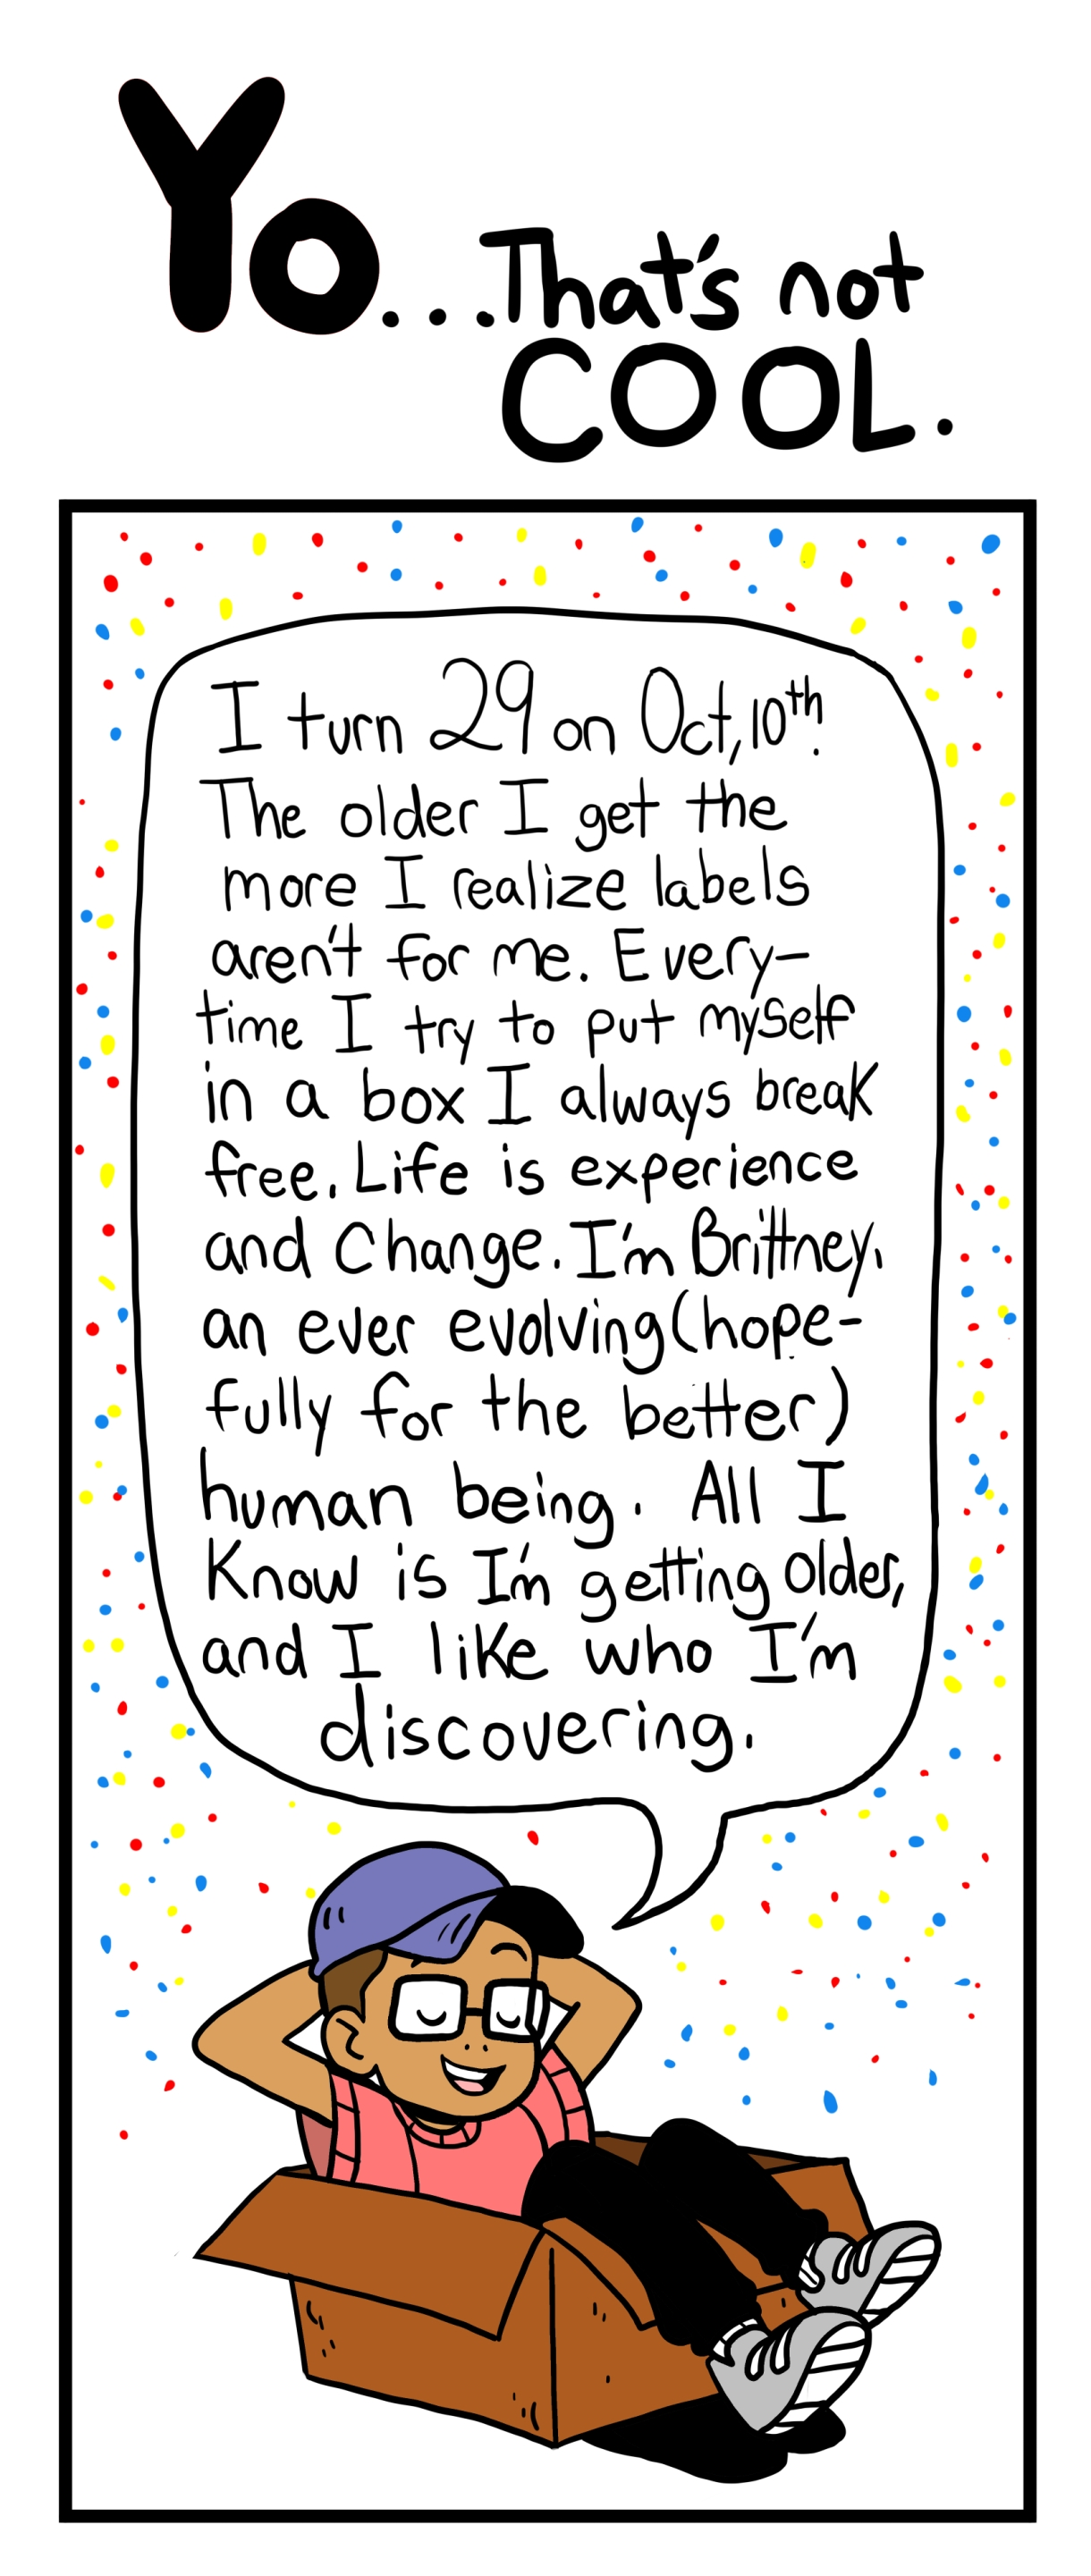 I turn 29 on Oct, 10th. The Older I get the more I realize labels aren't for me. Every time I try to put myself in a box I always break free. LIfe is experience and change. I'm Brittney, an ever-evolving (hopefully for the better) human being. All I know is I'm getting older, and I like who I'm discovering.